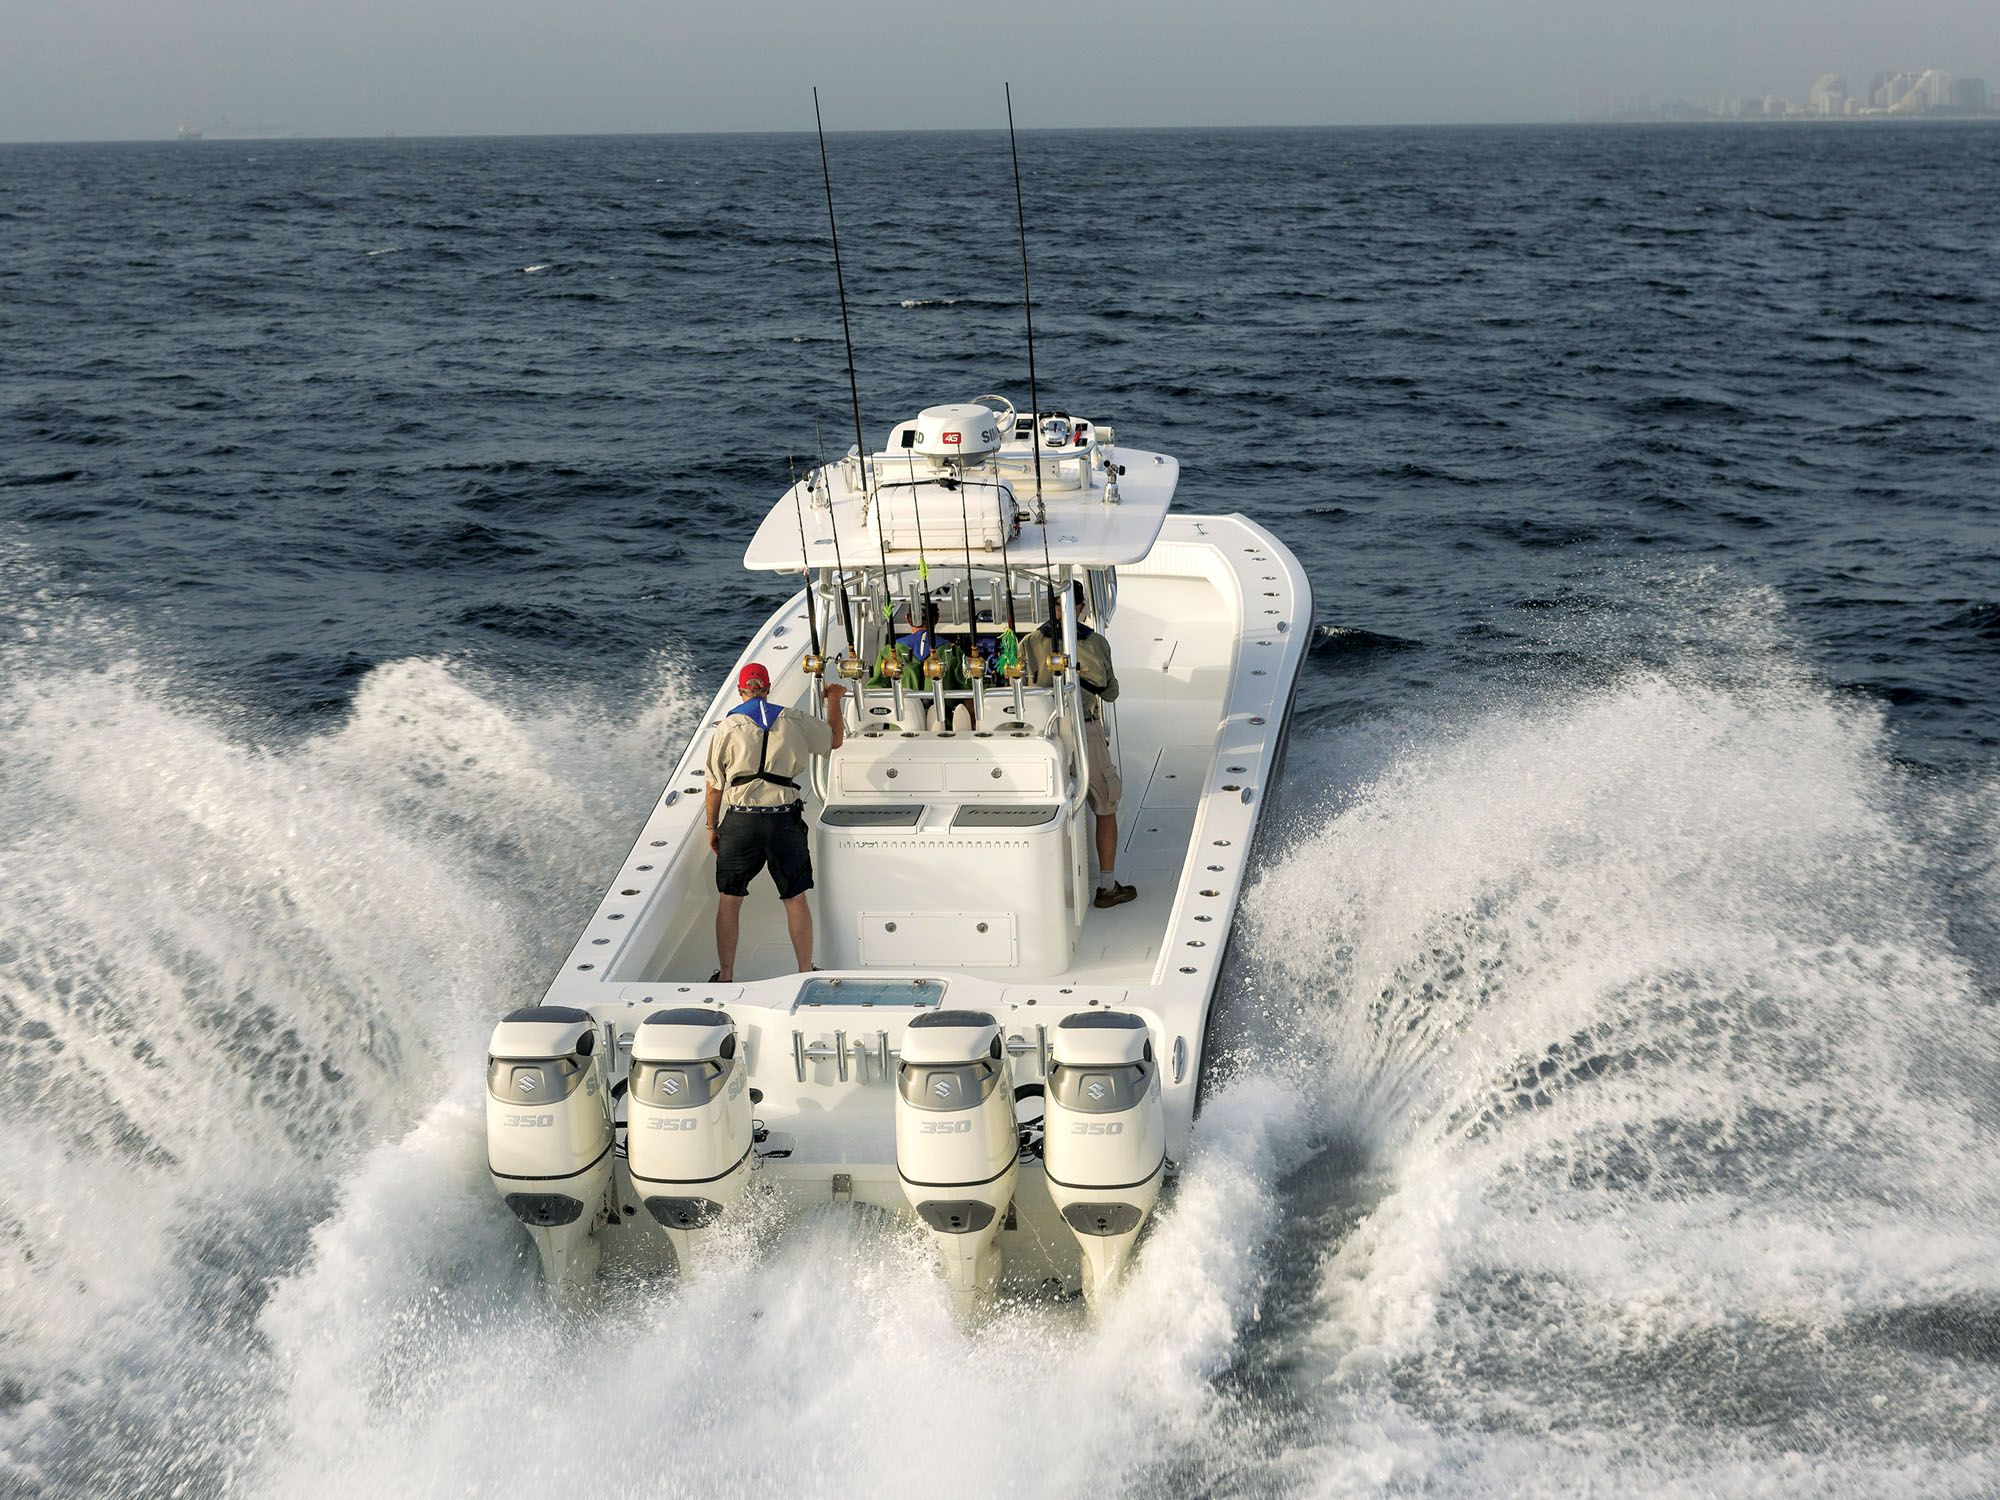 New Outboard Engines Spur the Rise of Single-System Boats | Sport